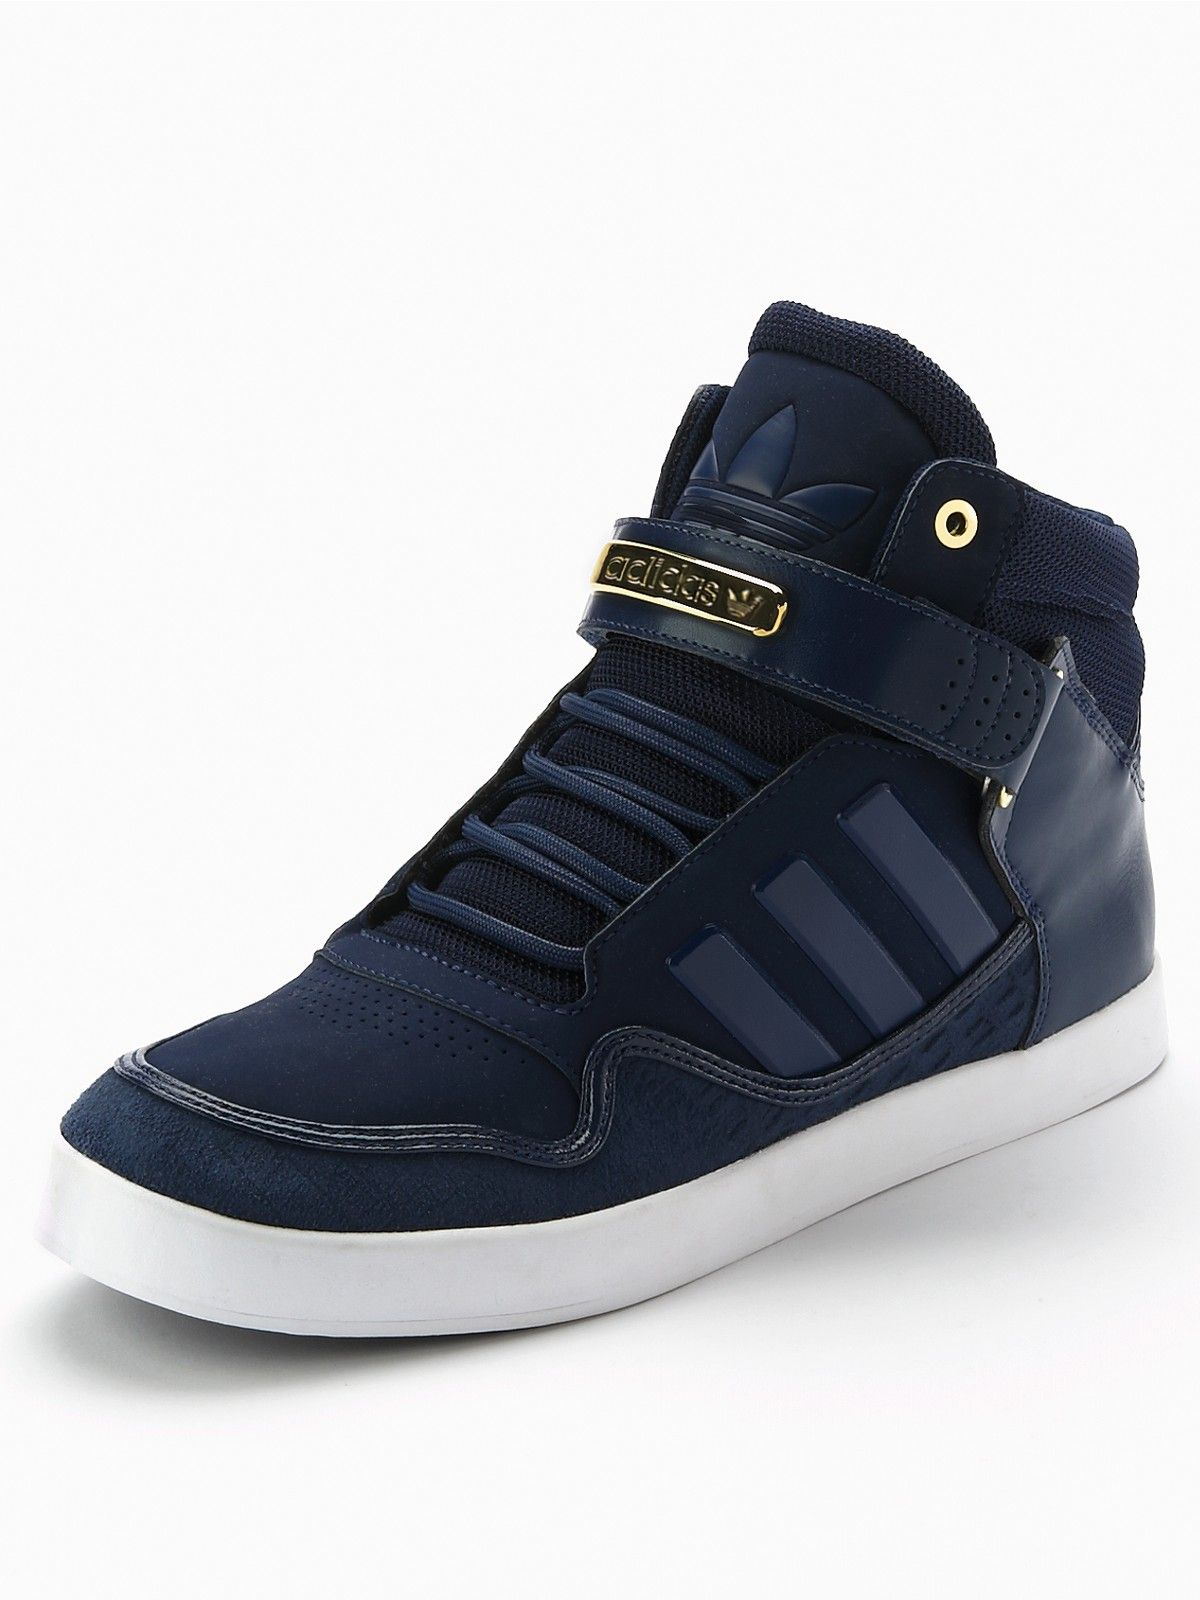 wholesale dealer 1a668 3e80b Adidas Originals AdiRise 2.0 Hi Top